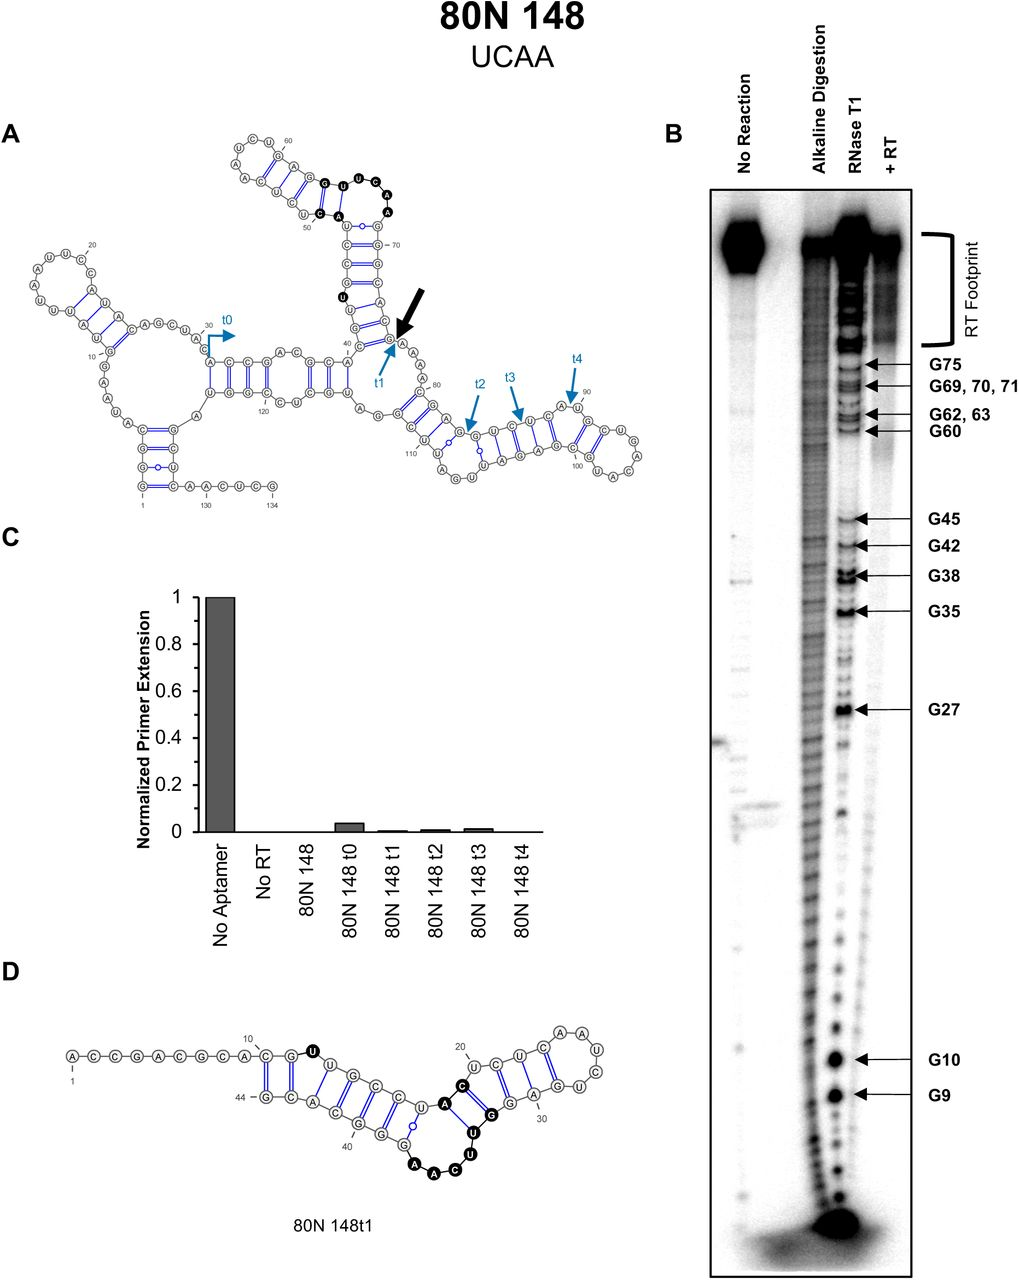 Minimization and motif characterization of 80N 148. ( A ) The predicted secondary structure of the aptamer with arrows depicting the location of the 3' boundary using RNase T1 digestion (large black arrow), and 3' end truncations that either remain functional (blue) or abrogate inhibition (red). ( B ) RT:aptamer 3' boundary. ( C ) Inhibition of HXB2 RT's DNA-dependent DNA polymerase activity by aptamer truncations. ( D ) The minimally viable 3' end truncation of the aptamer, 80N 148t1.